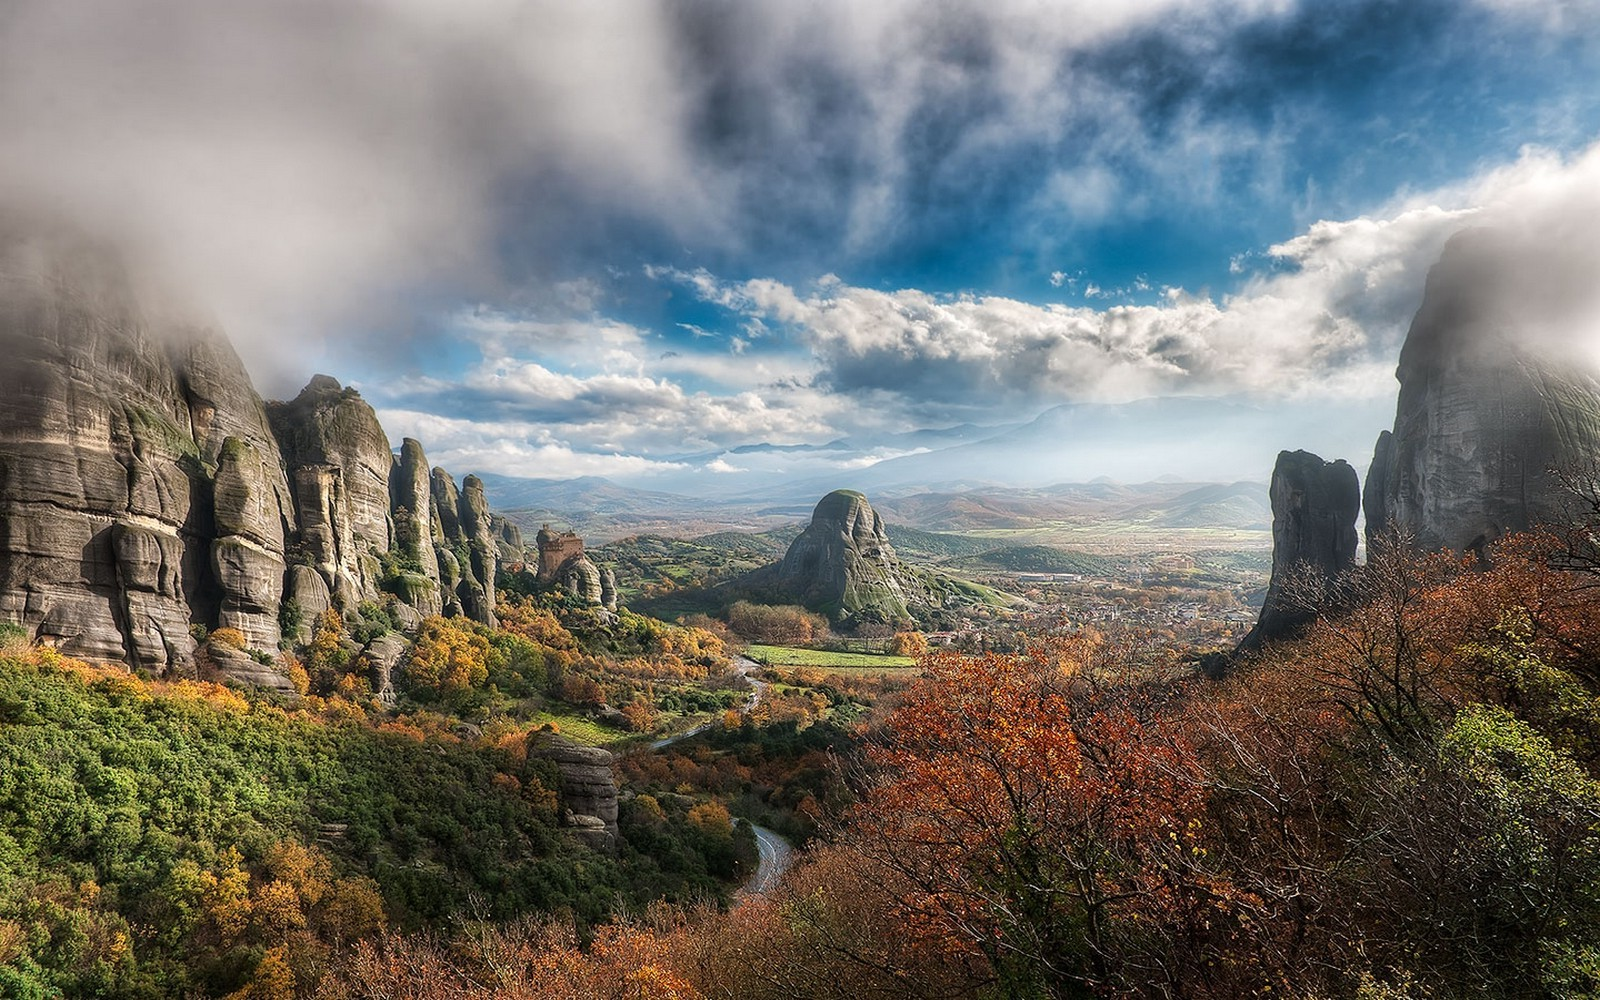 The Fall Movie Wallpaper Nature Landscape Greece Valley Fall Clouds Rock